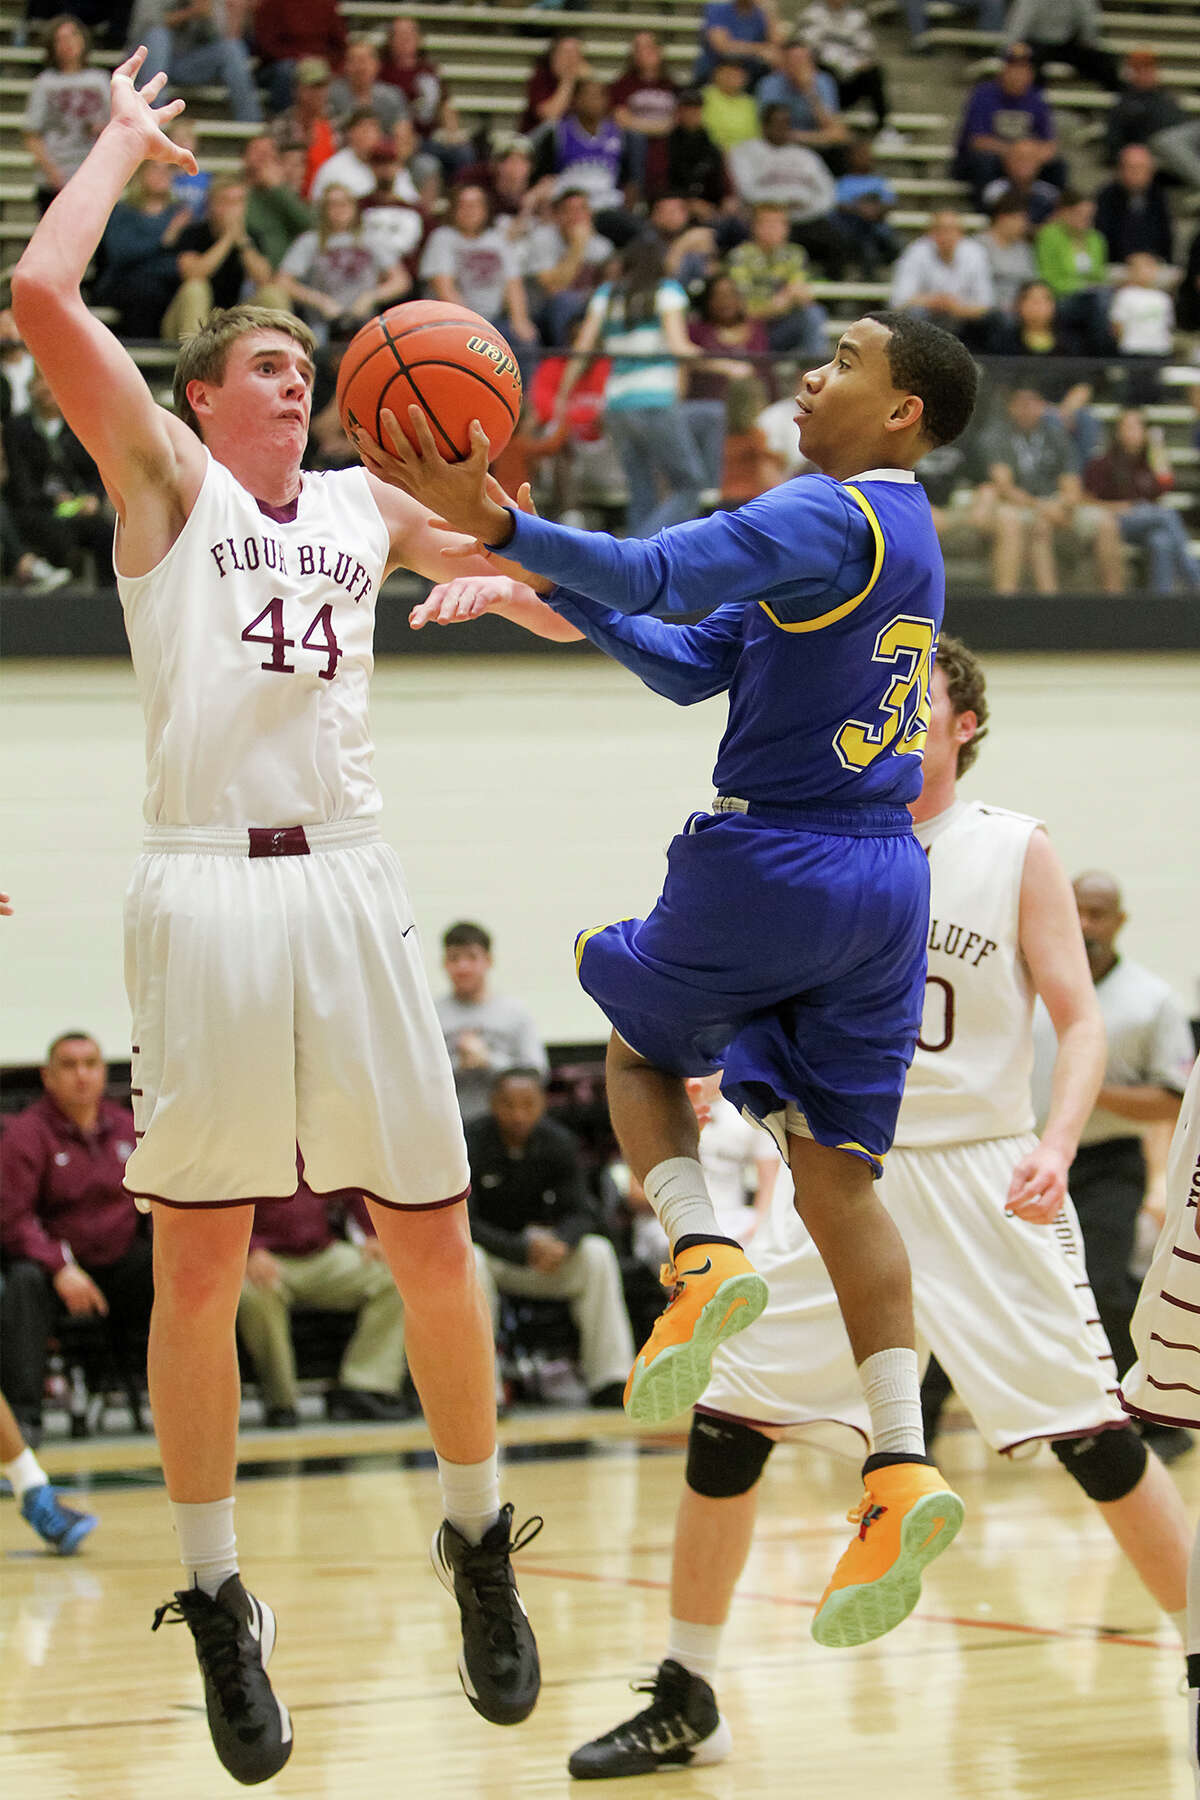 Clemens' Juway Strom (right) shoots over Corpus Christi Flour Bluff's Cody Brewer (left) during the first half of their Region IV-4A semifinal game at Littleton Gym on Friday, Feb. 28, 2014. Clemens beat the Hornets 75-50. MARVIN PFEIFFER/ mpfeiffer@express-news.net